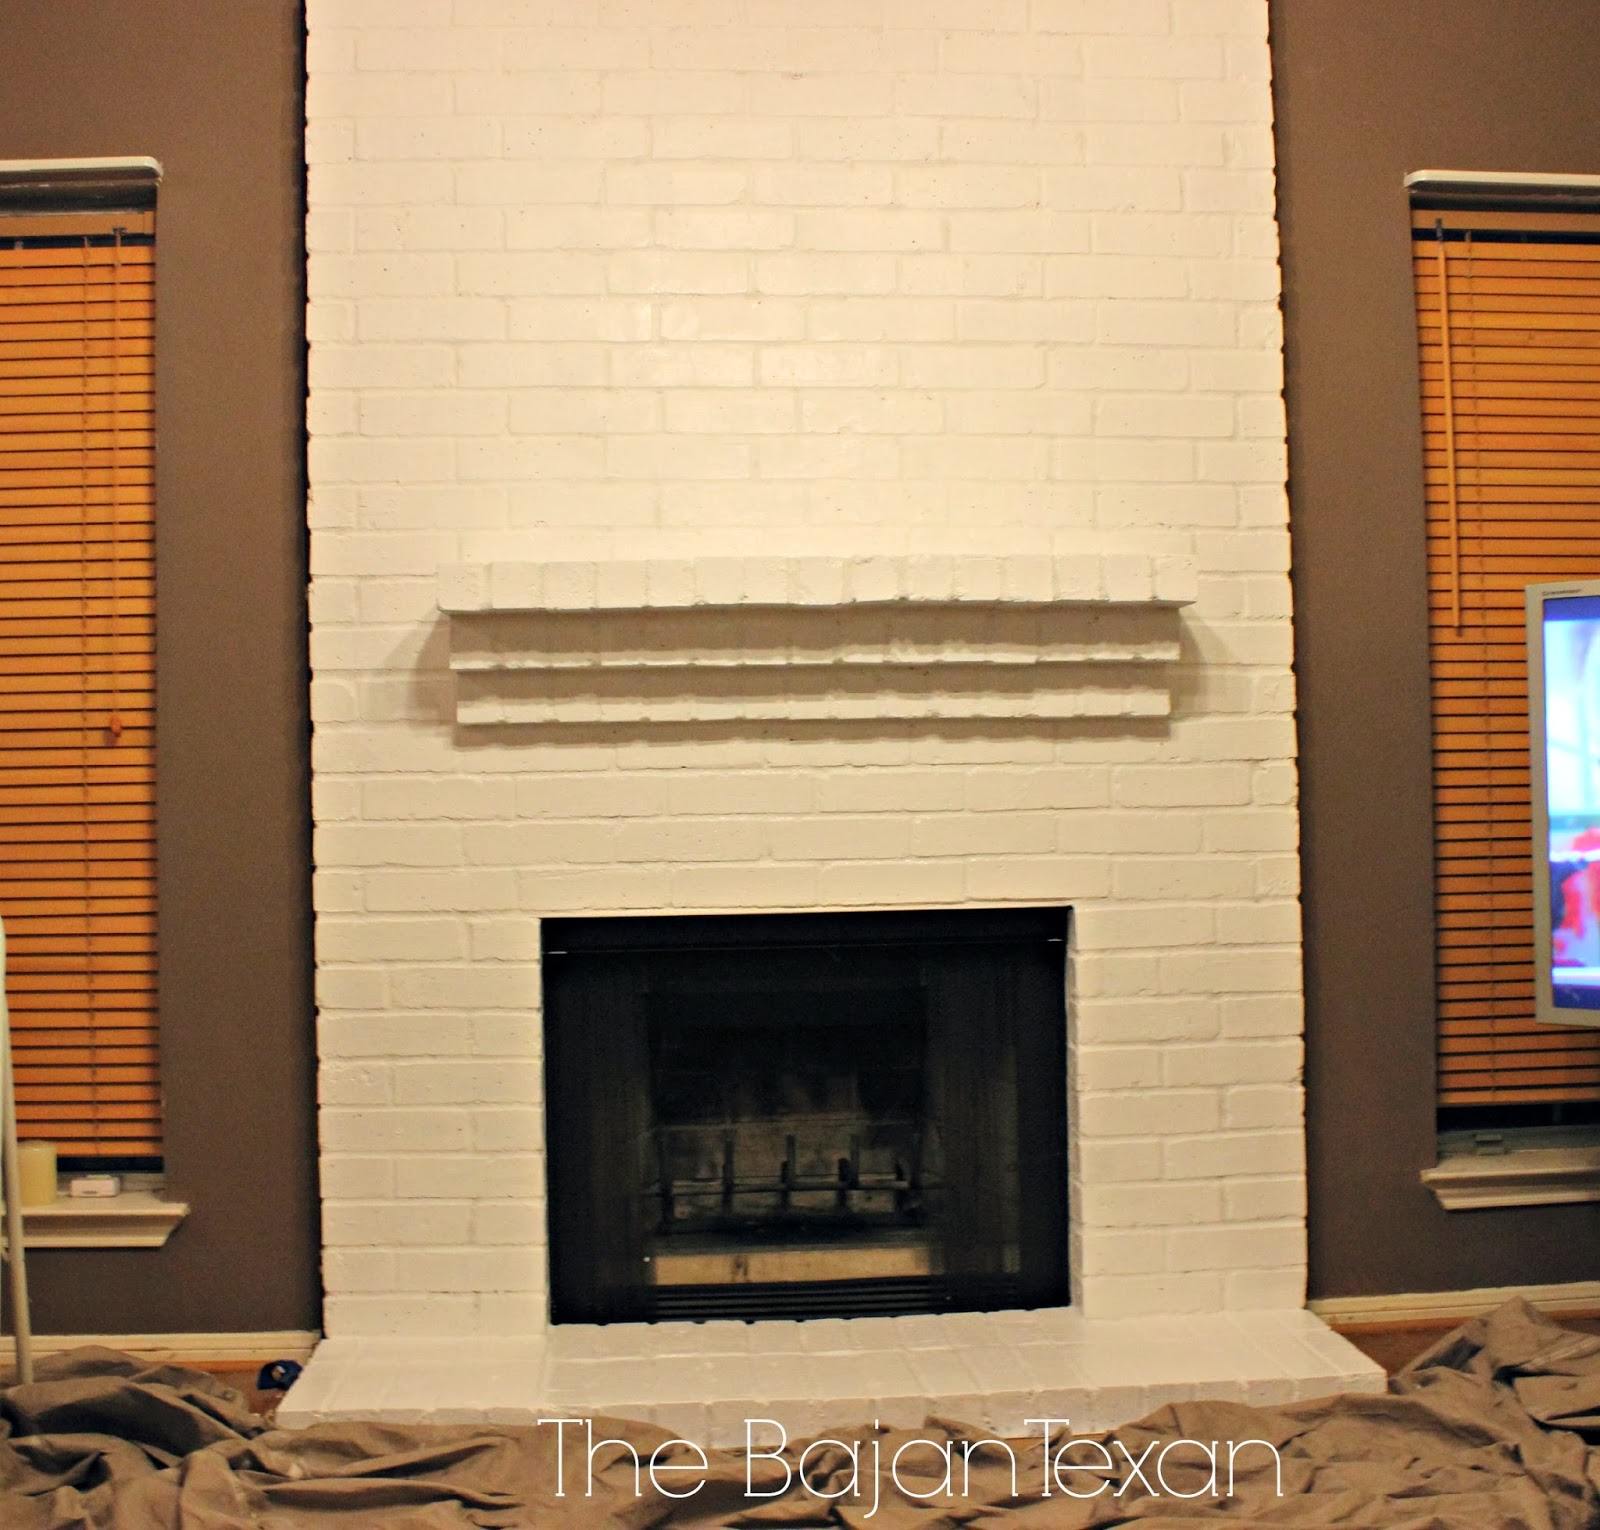 How to Paint a Brick Fireplace - Check out how I painted my friend